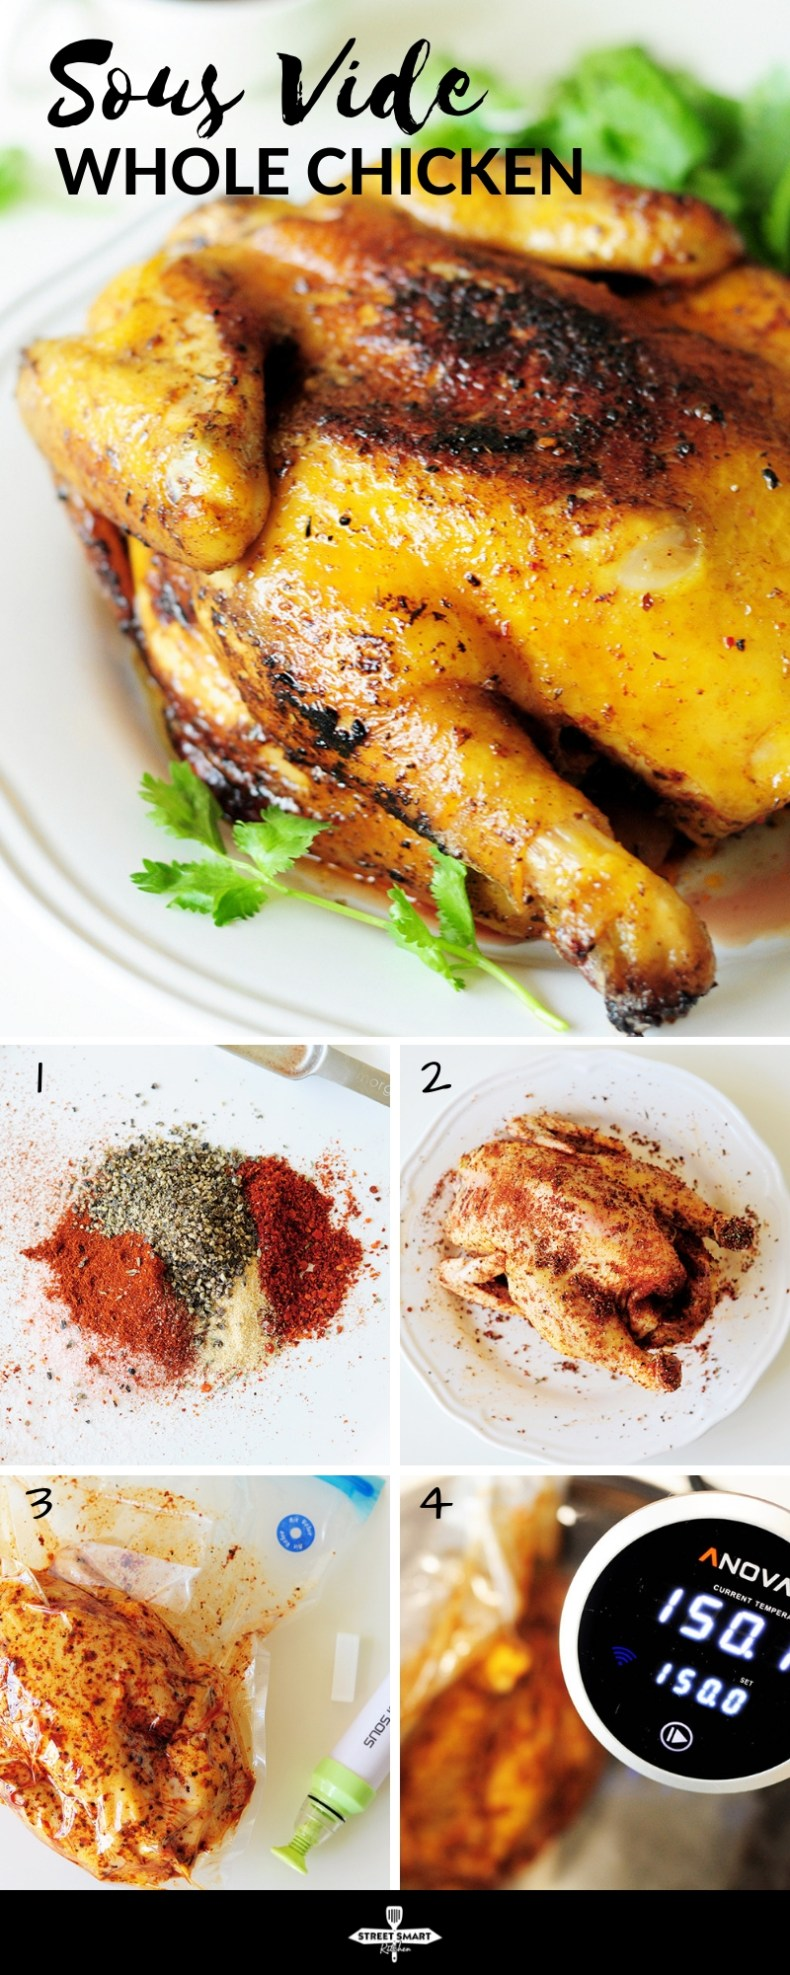 This sous vide whole chicken recipe will be the juiciest, tenderest, and most flavorful chicken you'll ever make. Step-by-step photo guide included.